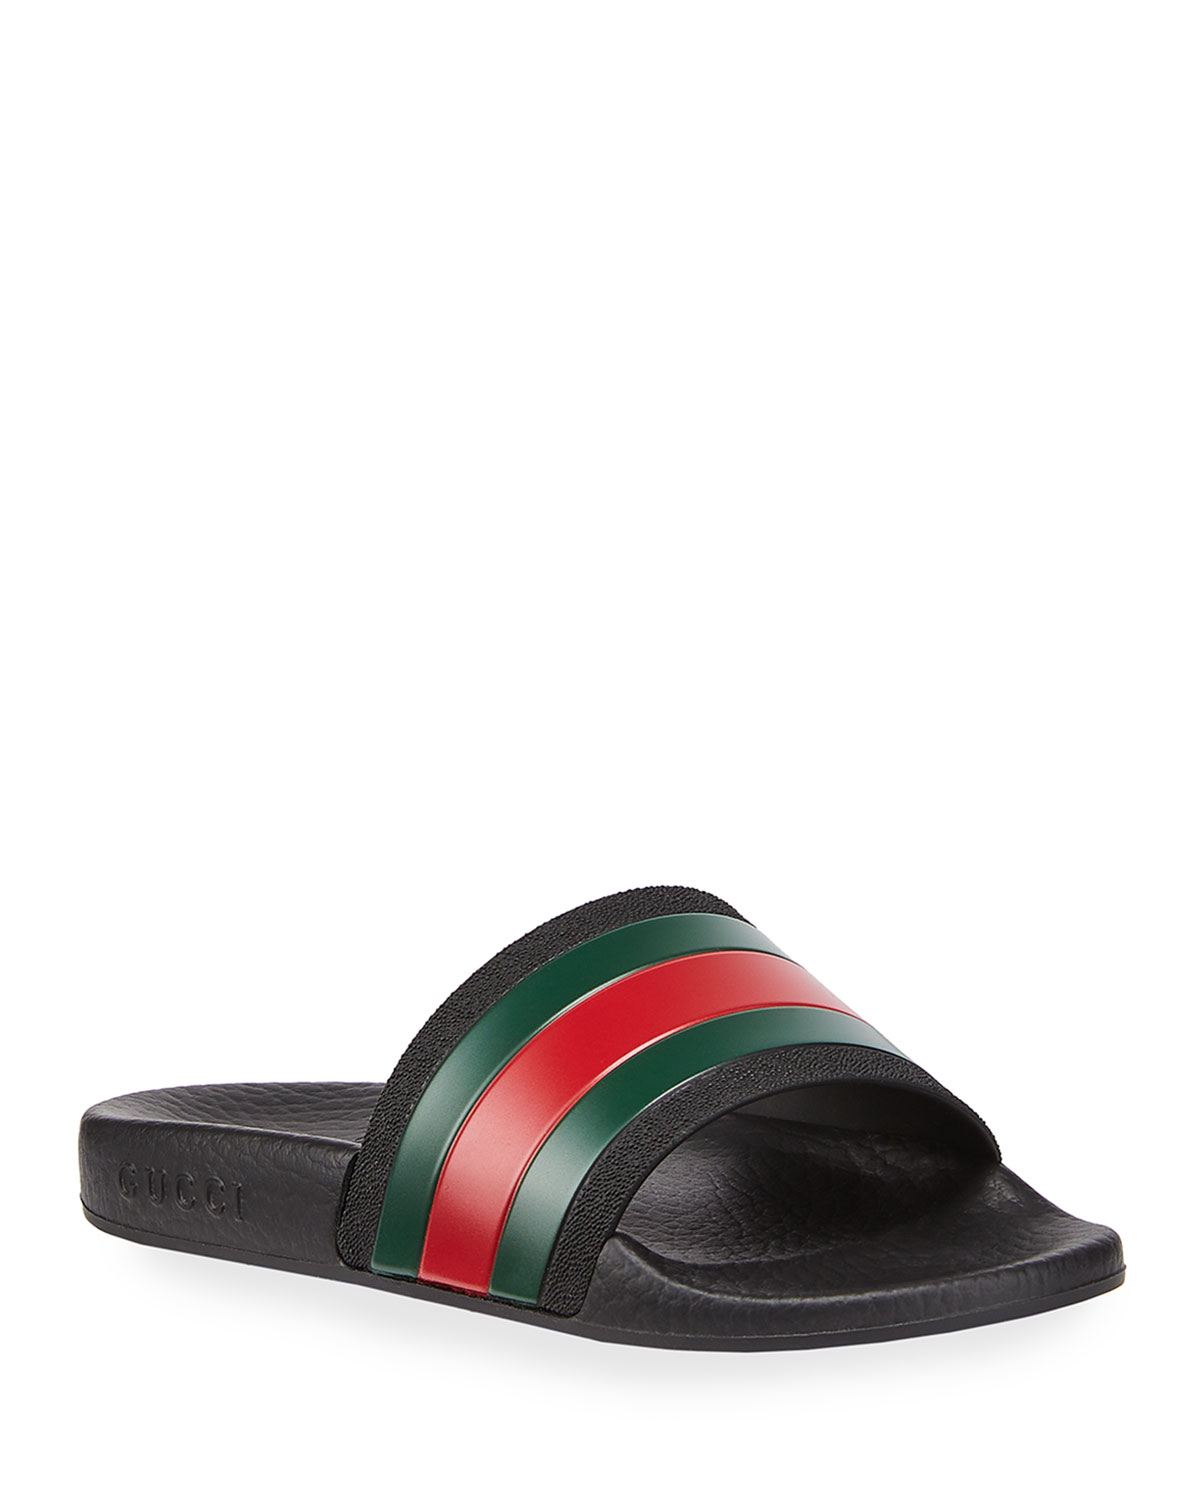 f6cdcd7a2be2 Gucci Pursuit Web Rubber Slide Sandal